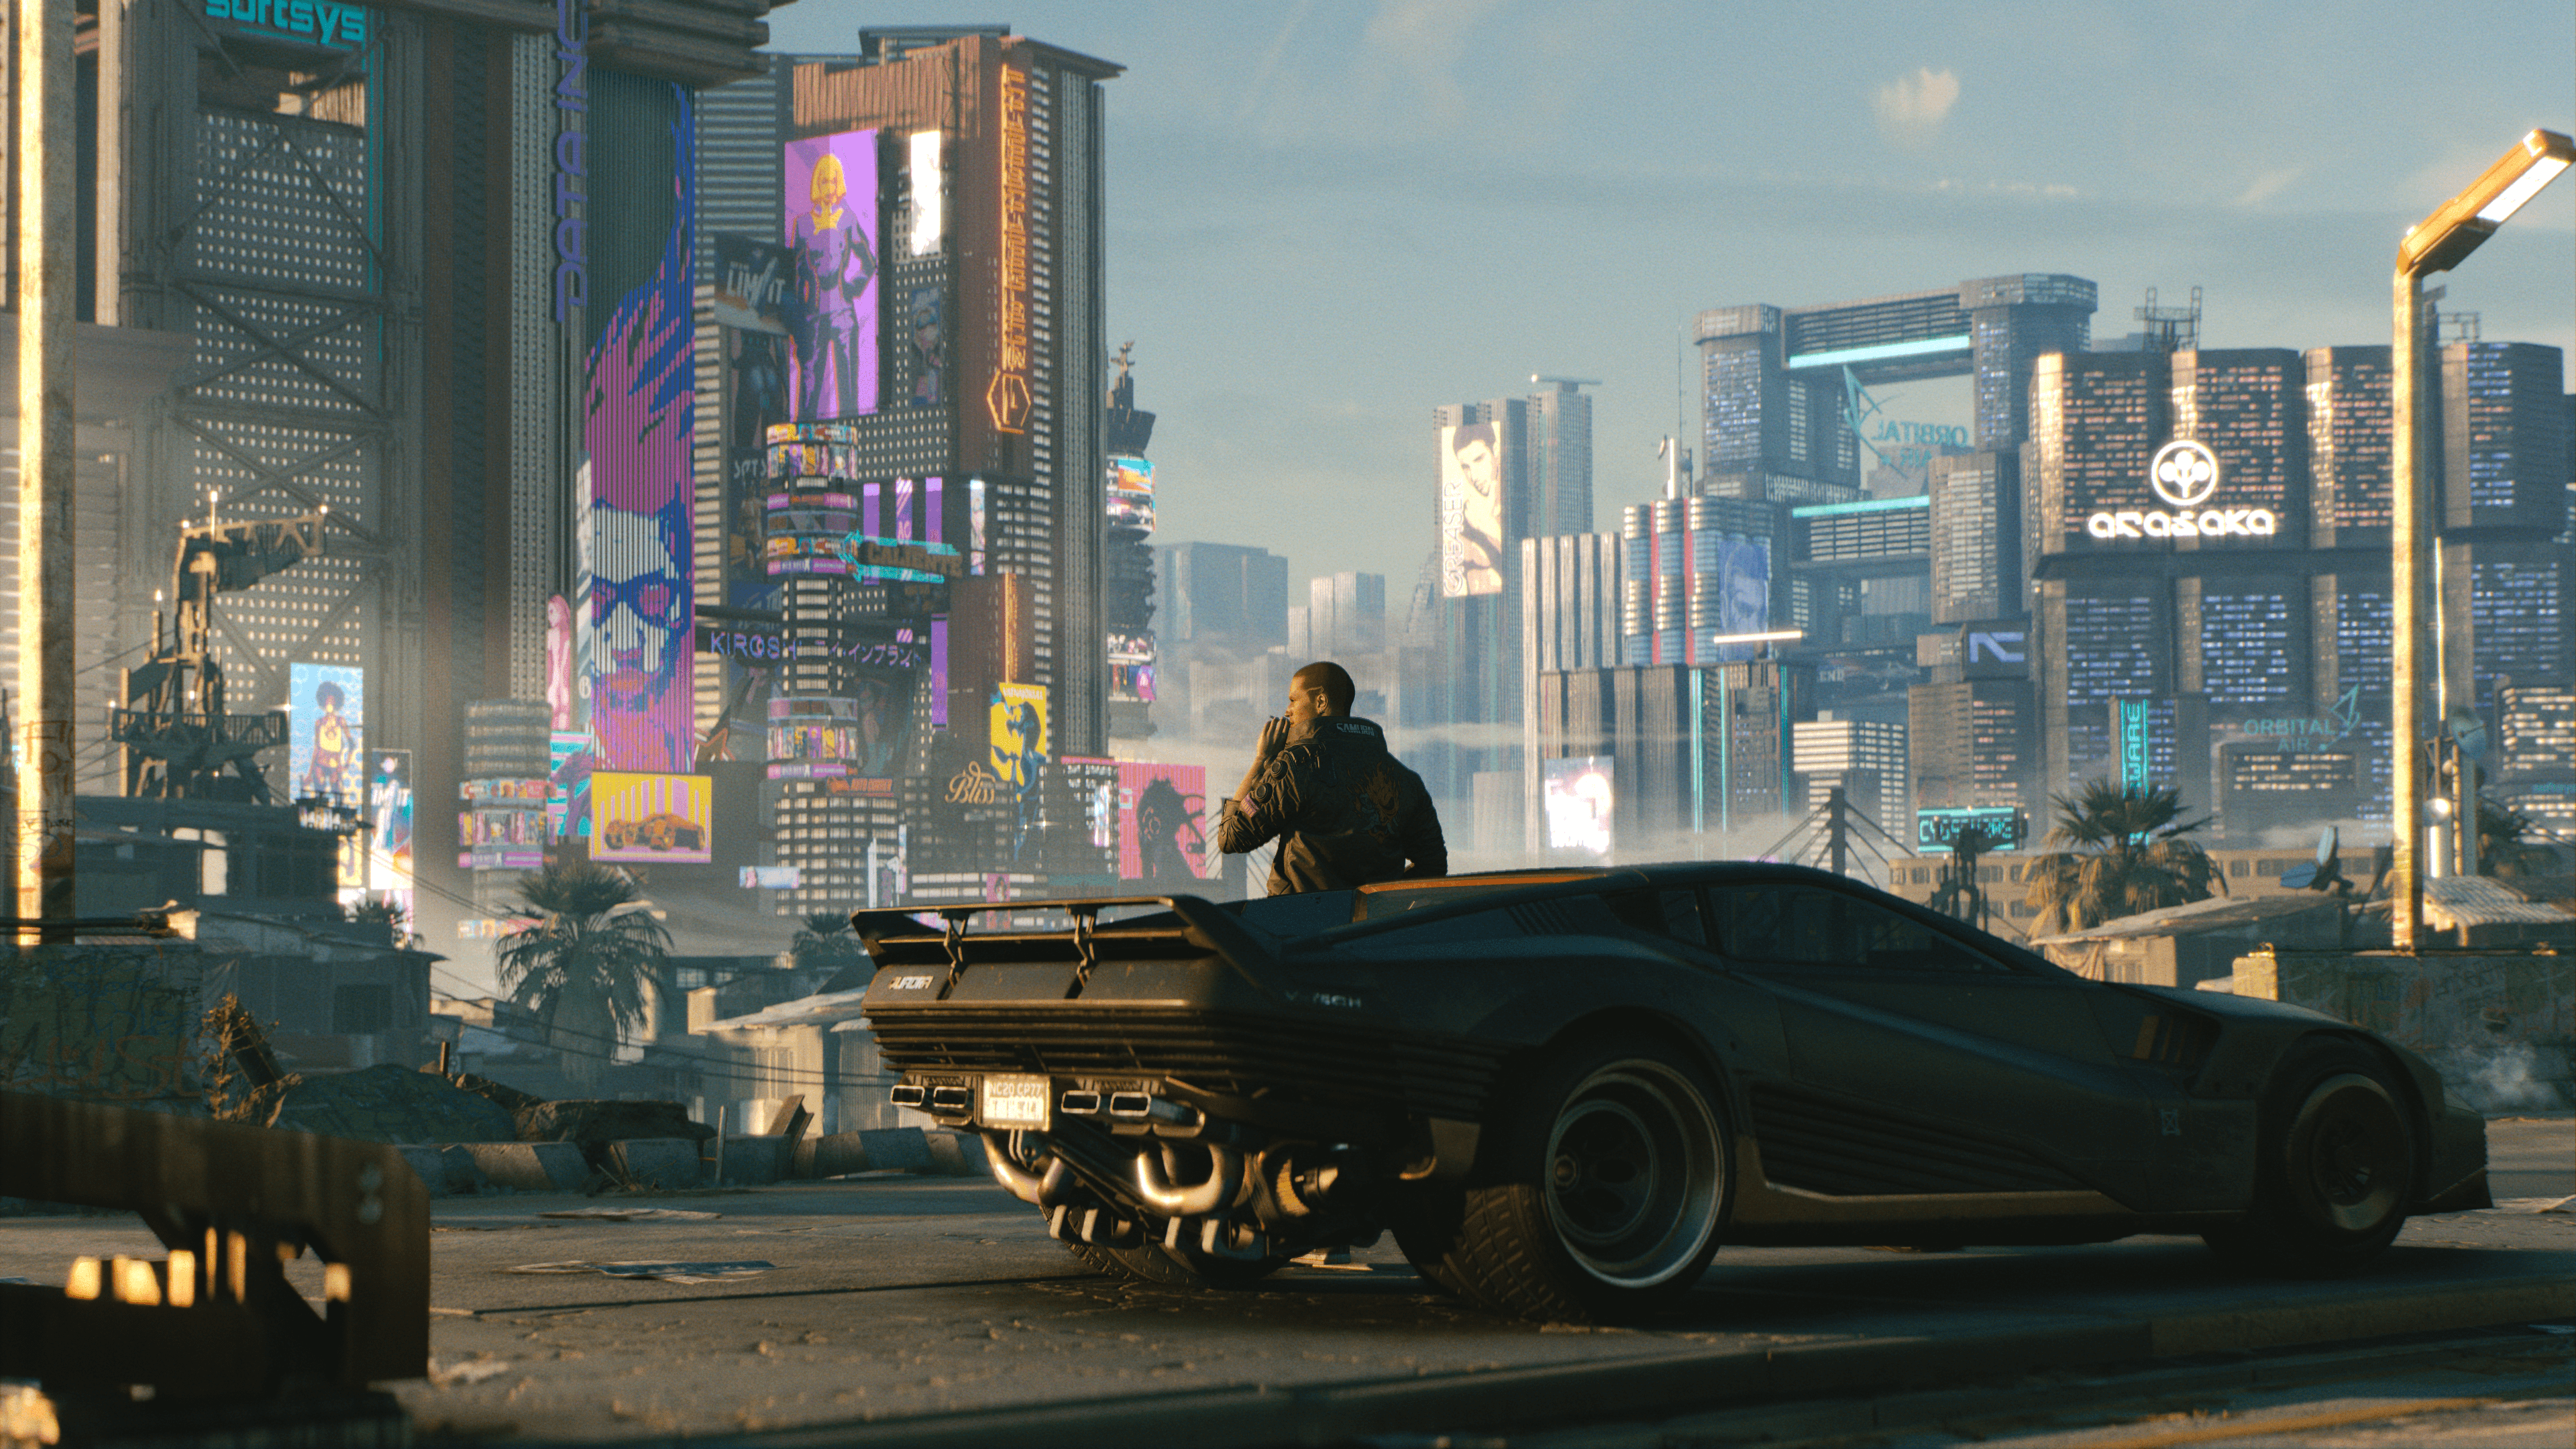 Cyberpunk 2077 Upgrade To Allow Crossover From PS4 To PS5.